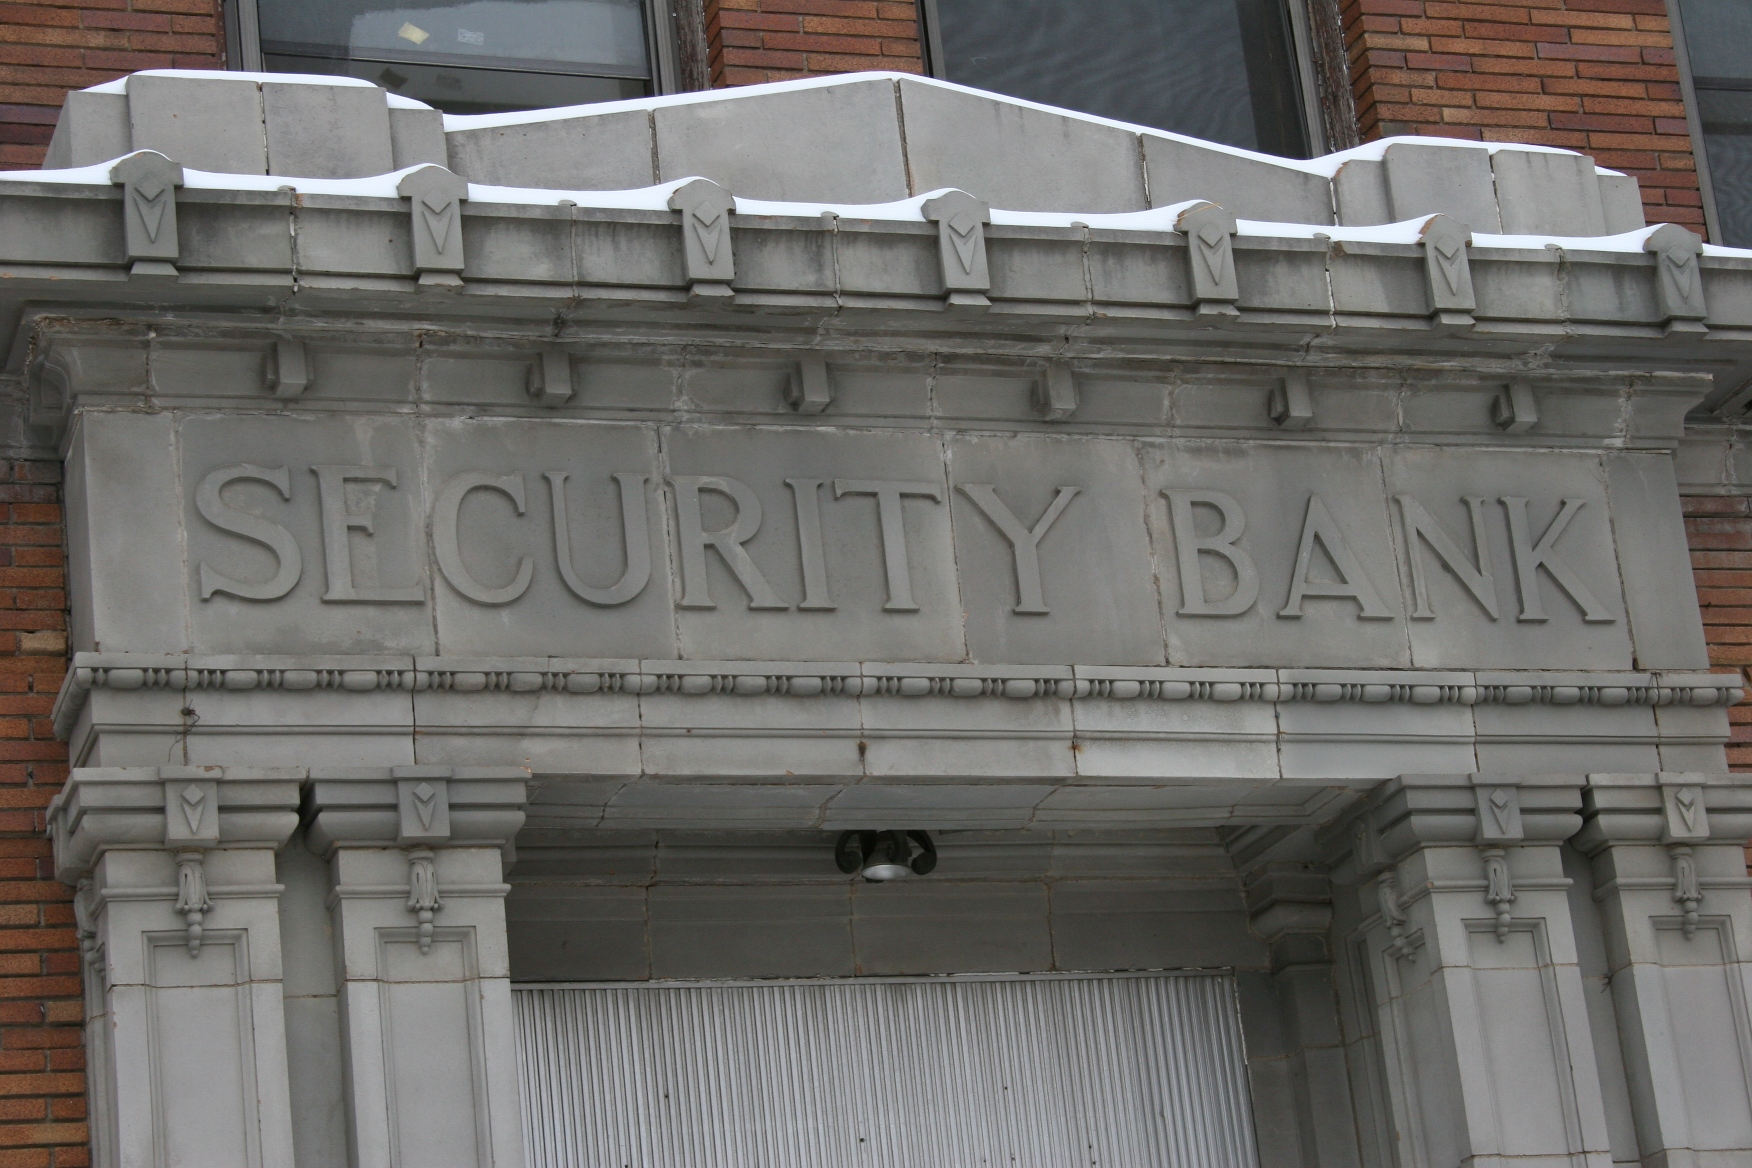 The Great Security Bank Mystery (1902)